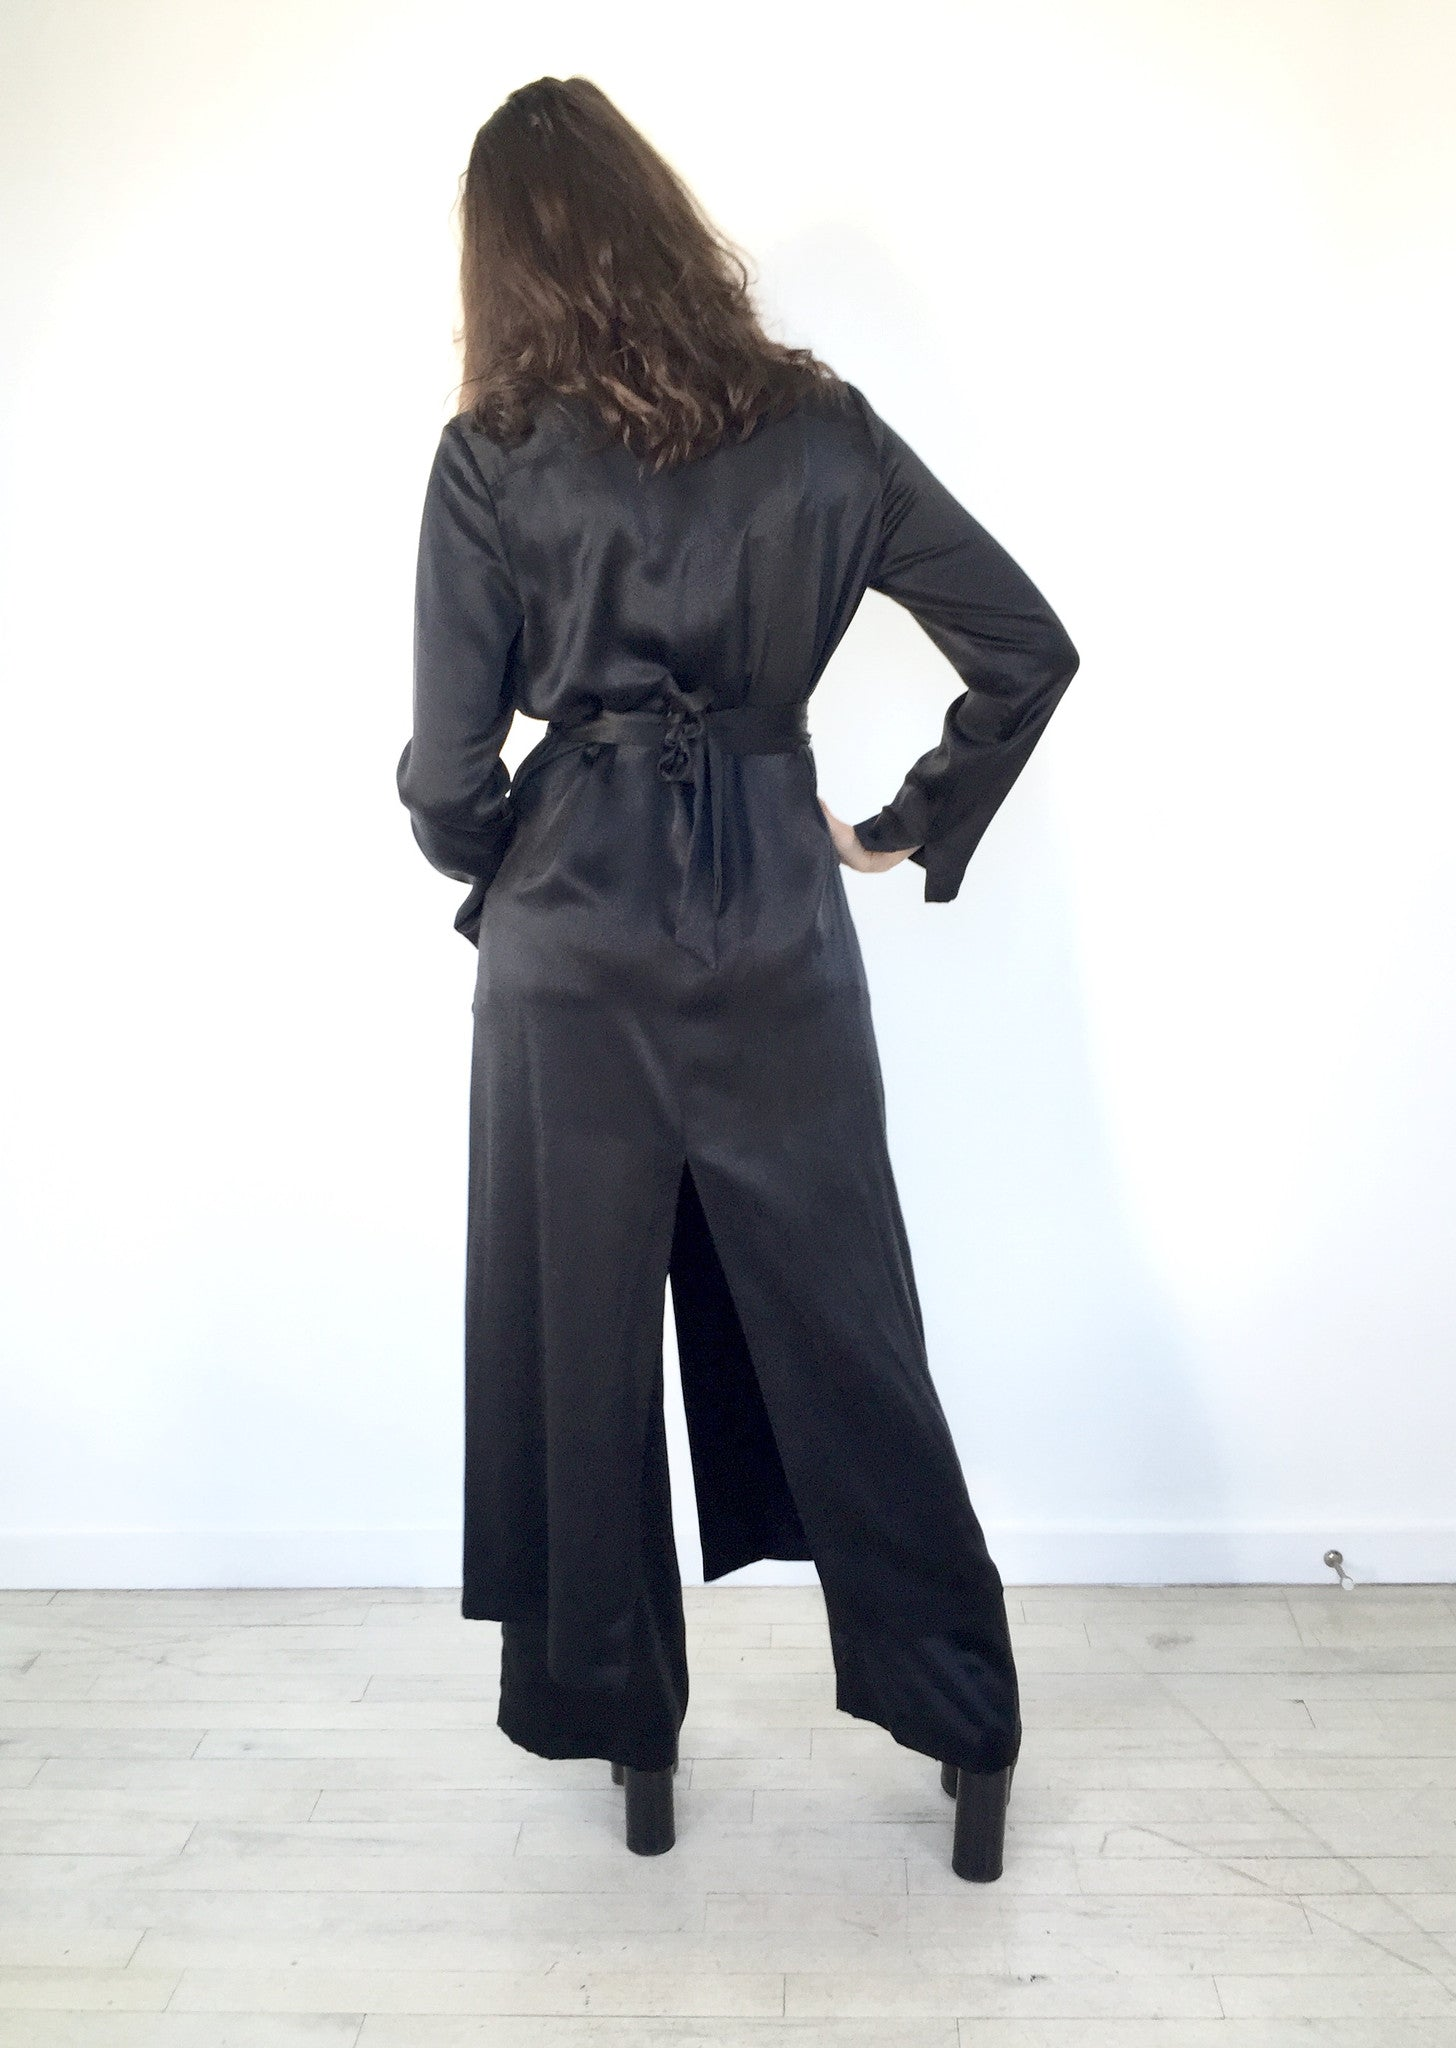 signature Silk charmeuse Duster Robe Kimono Jacket Wendy Nichol clothing fashion designer Handmade in NYC New York city custom color fabric Made to measure tailoring tailor